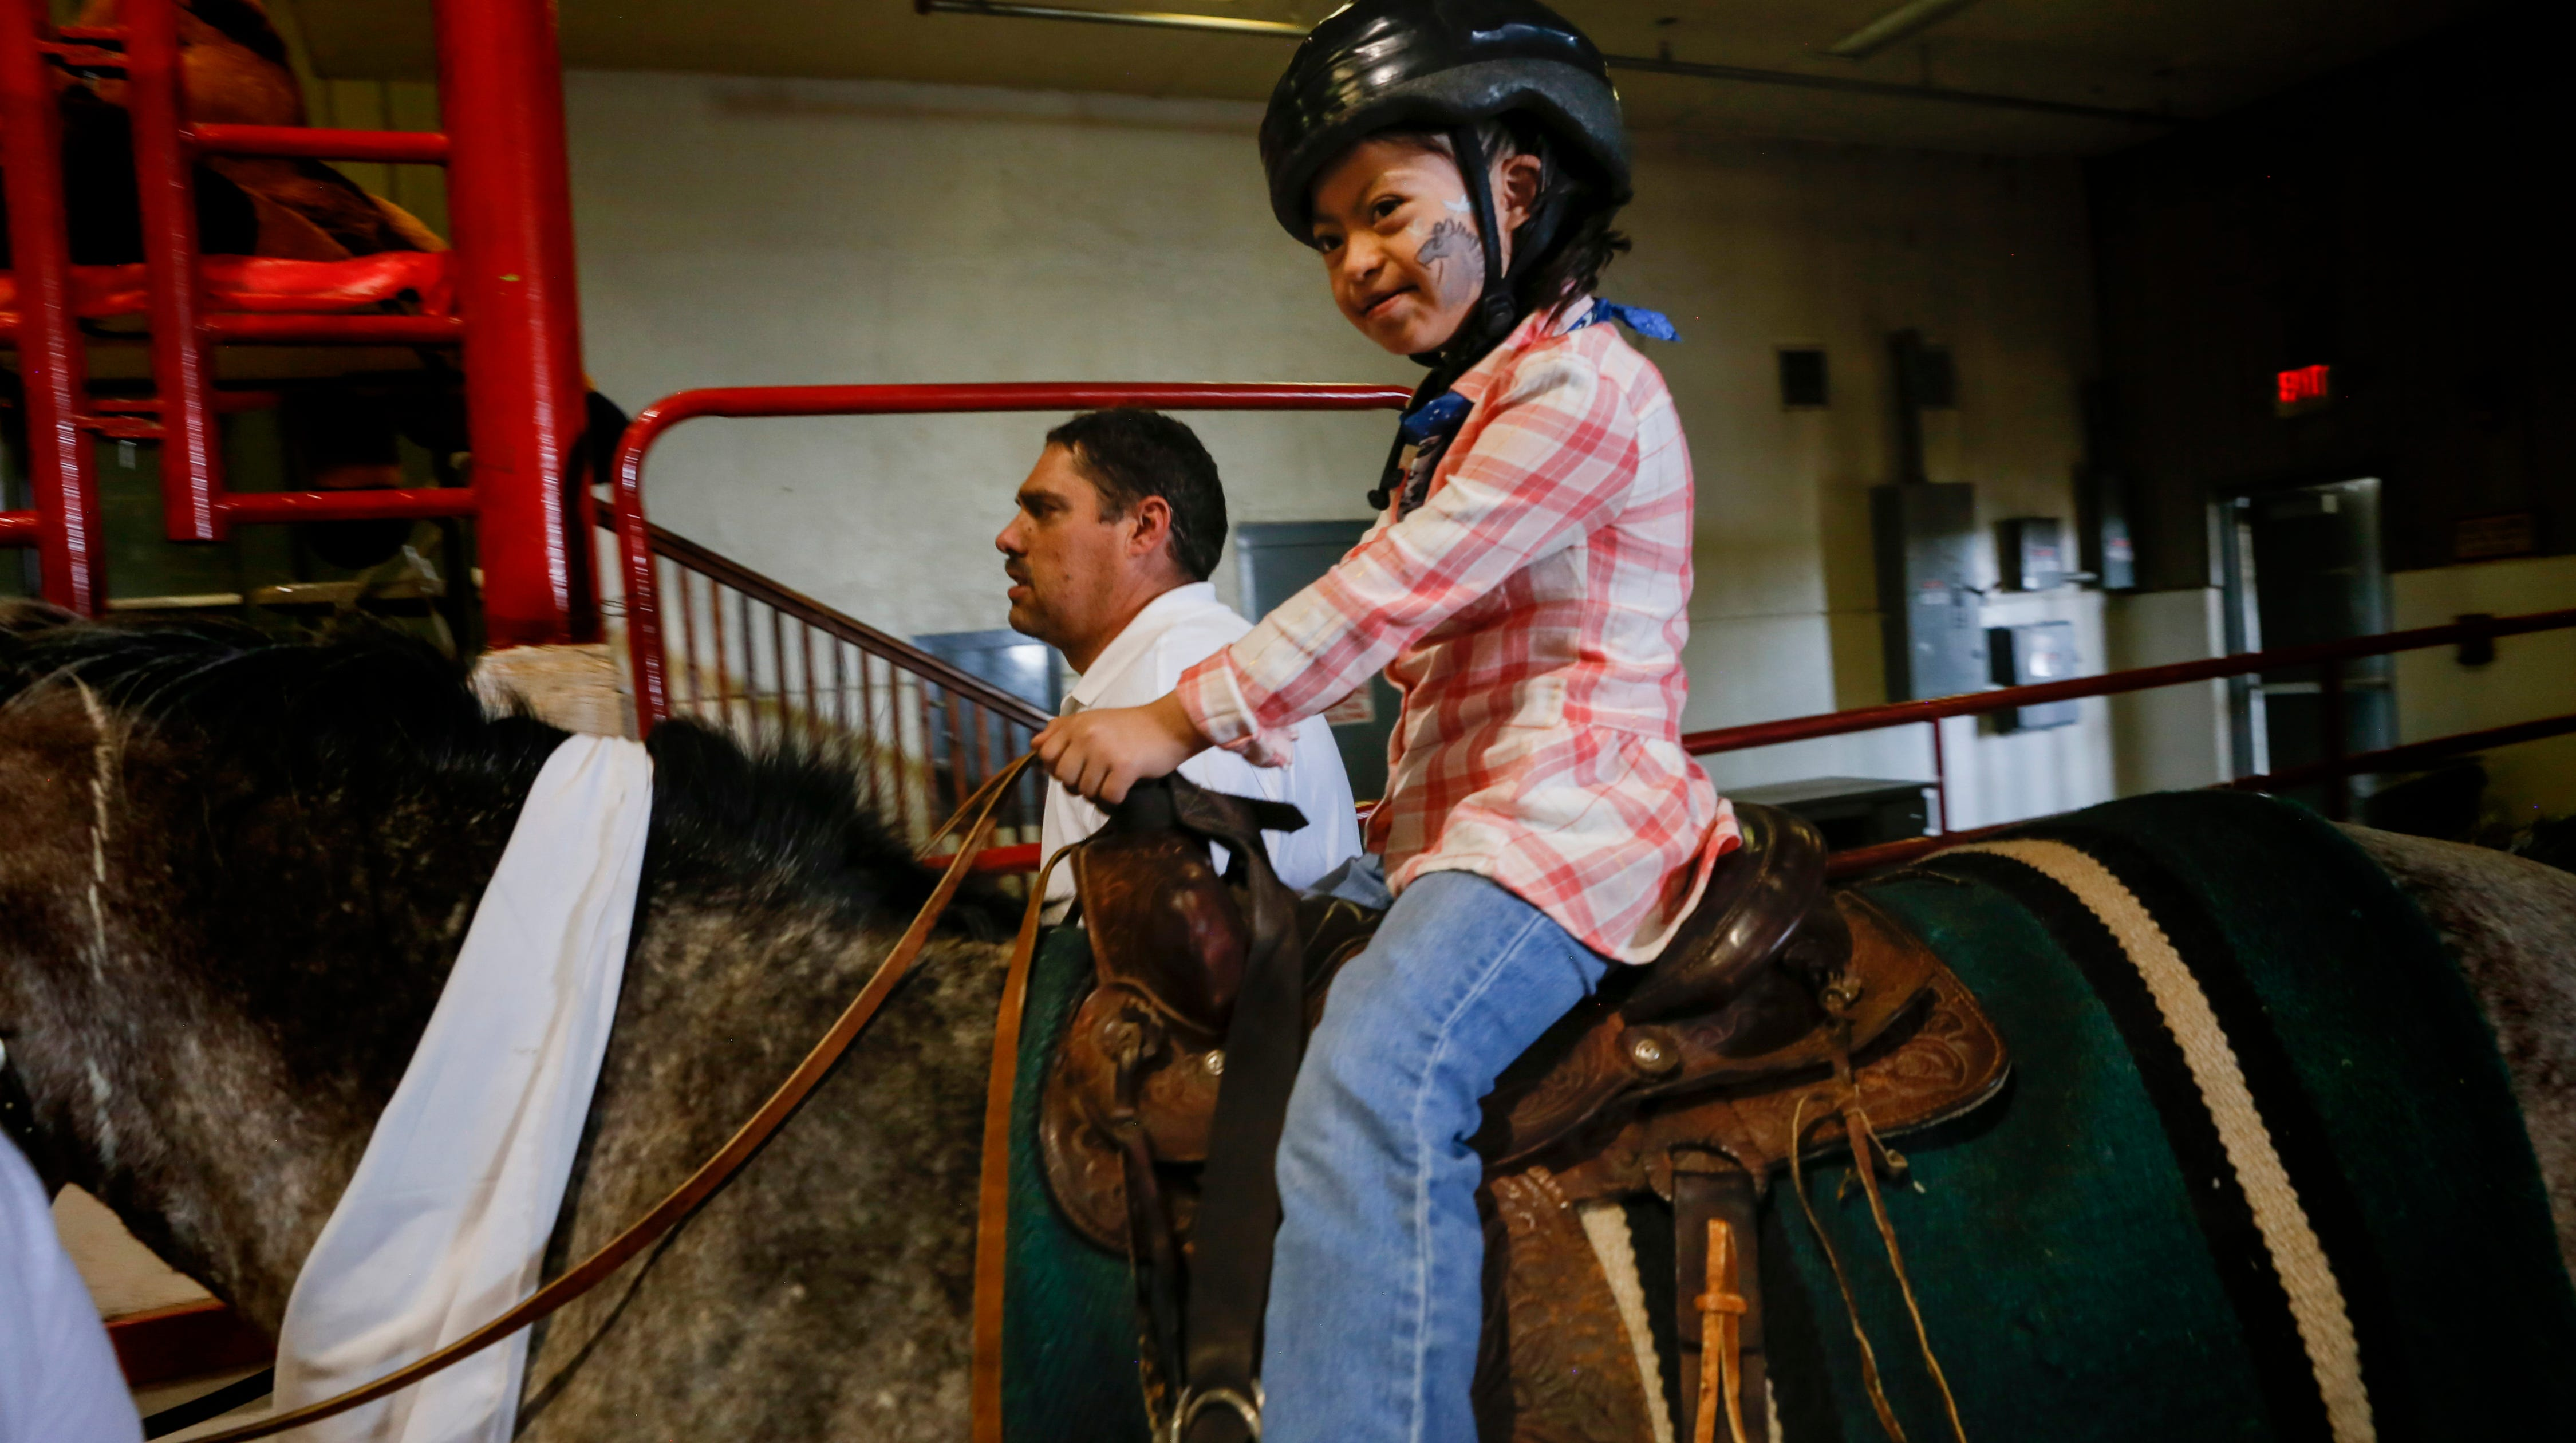 People with disabilities show off horsemanship skills during county fair